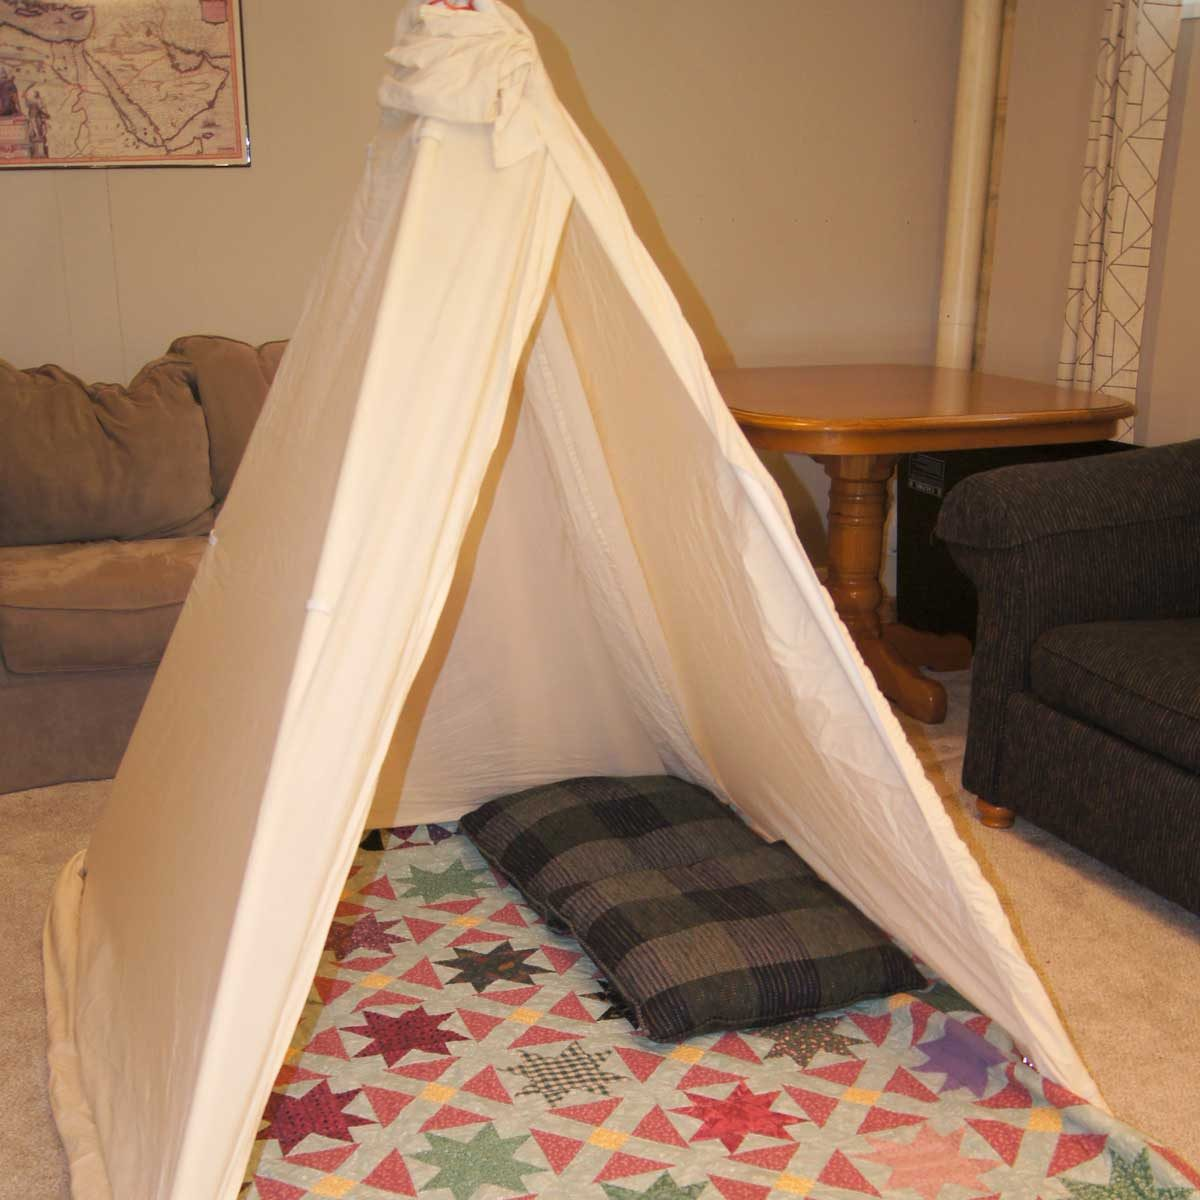 Cover the Teepee